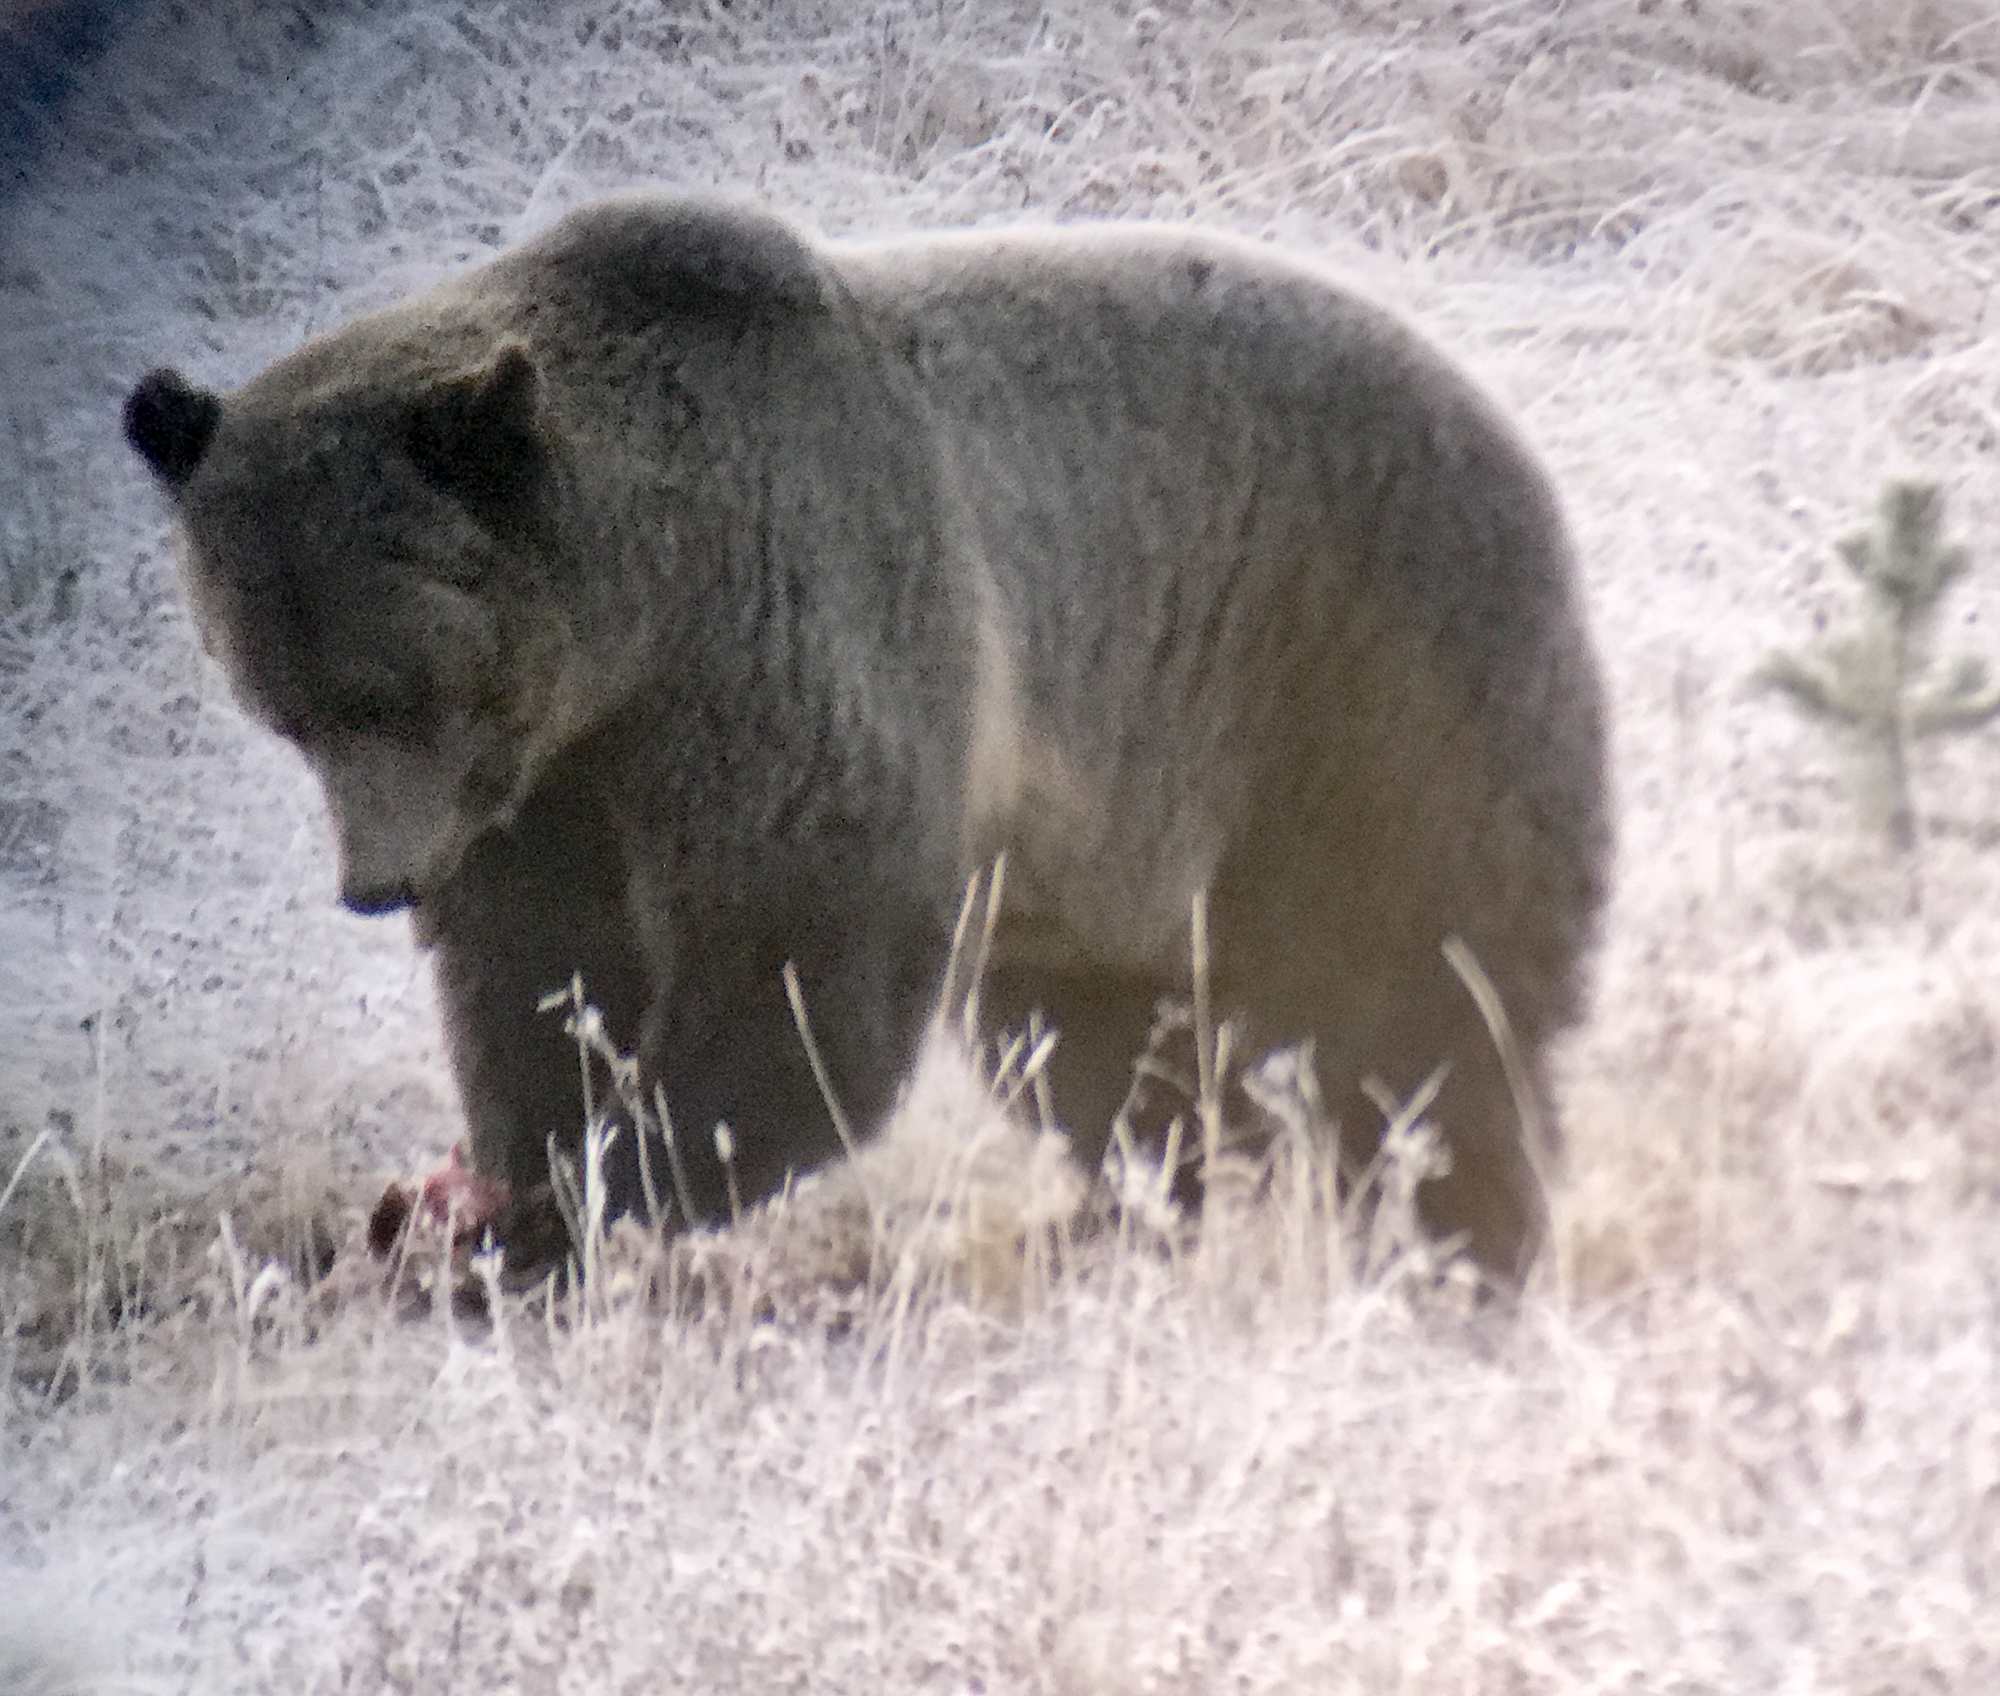 Grizzly eating breakfast